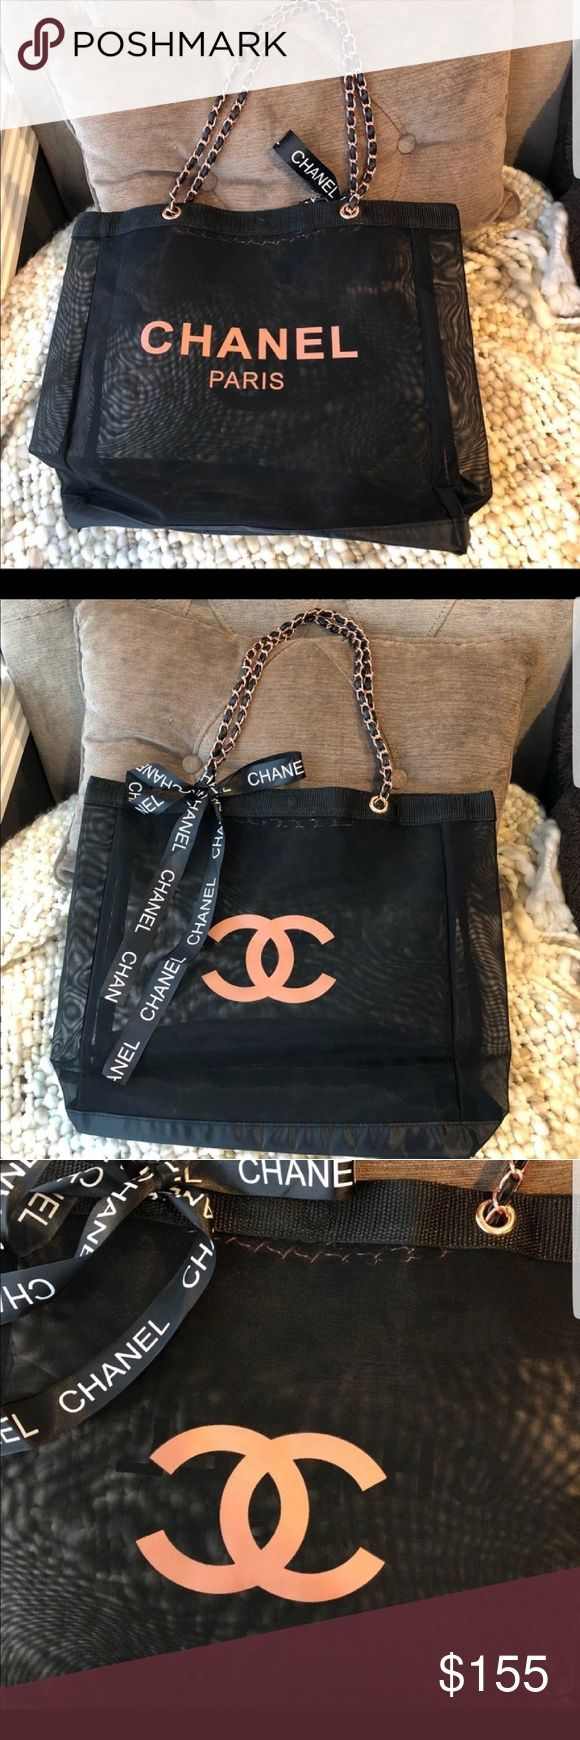 "Authentic CHANEL VIP Gift Black Mesh Tote Bag Brand New from winter 2017 CHANEL PRECISION Beauty Counter It has the CHANEL PARIS print in the front and the CC Logo on the back side Leather handle with Rose Gold Chain Magnetic closure on the top Measures L17""X H14""XW5""  It is made by Chanel to their VIP guests as a gift when a certain amount is spent  There is no way to buy it in the store A gift bag does not come with the identification card or dust bag, since these accessories only come…"